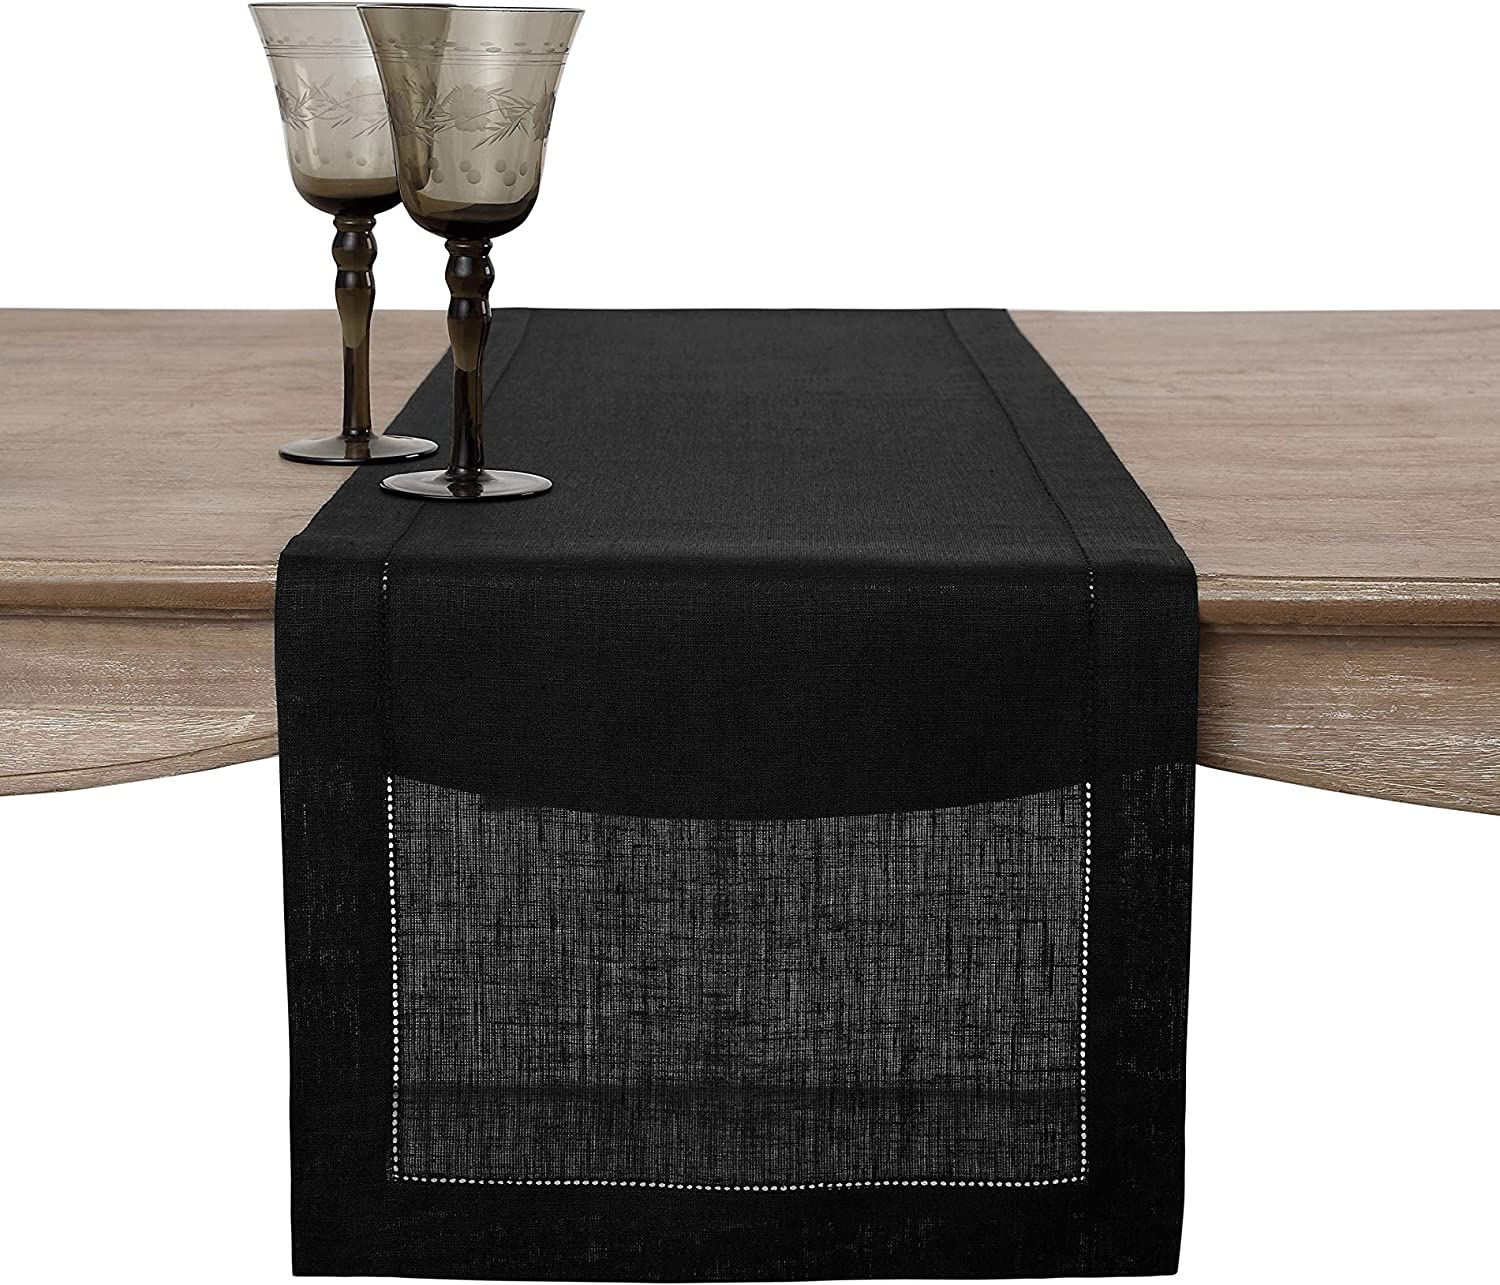 Hemstitched Runner Solino Home 100/% Pure Linen Table Runner 16 x 72 Inch Black European Flax Natural Fabric